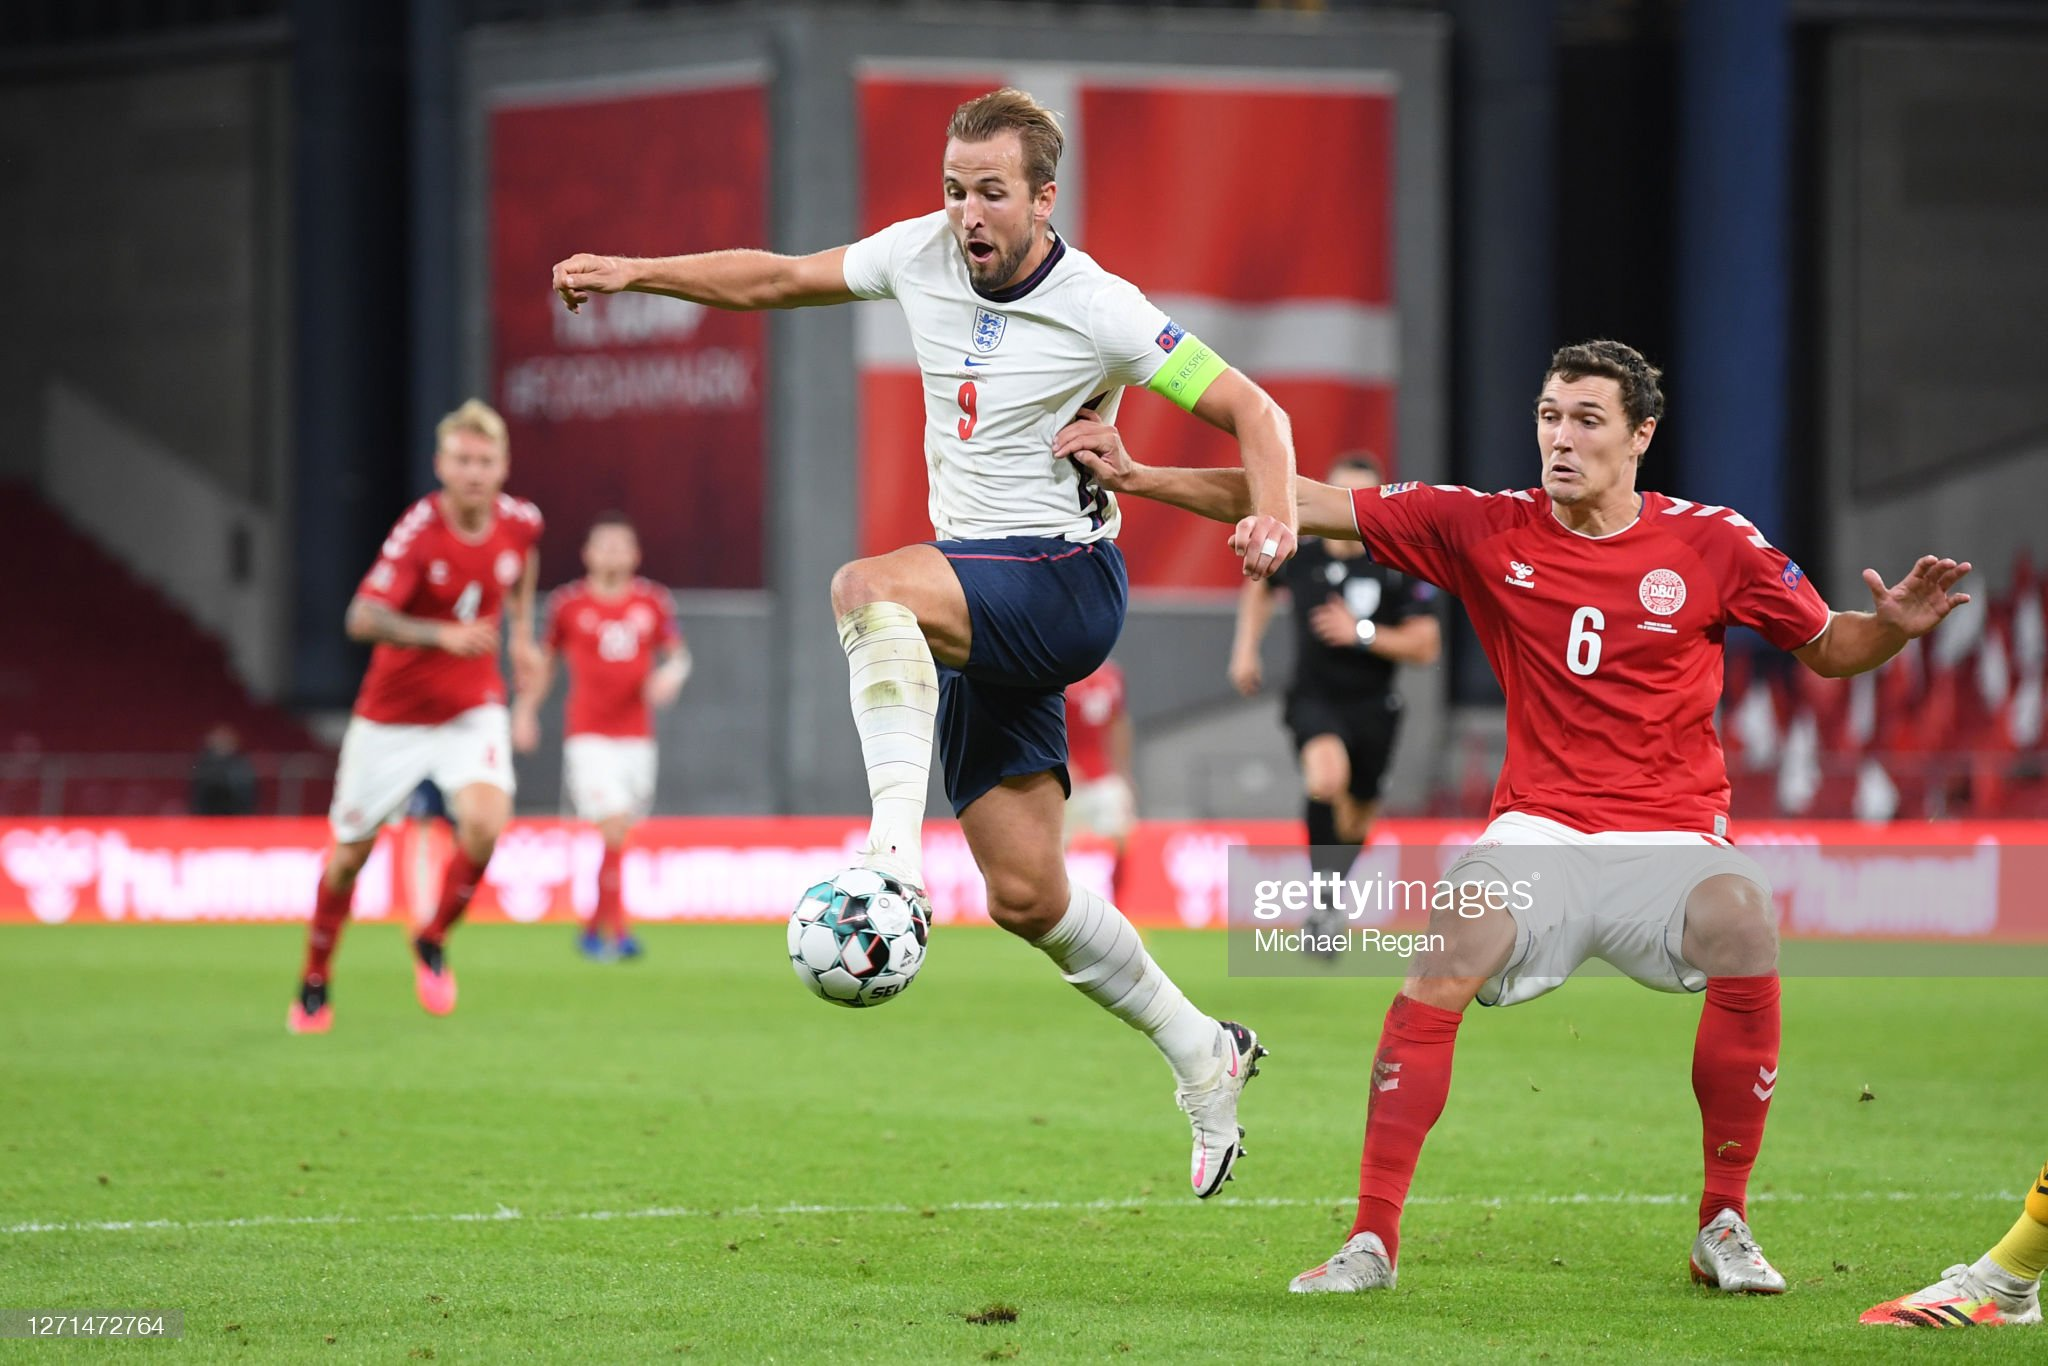 England vs Denmark Preview, prediction and odds